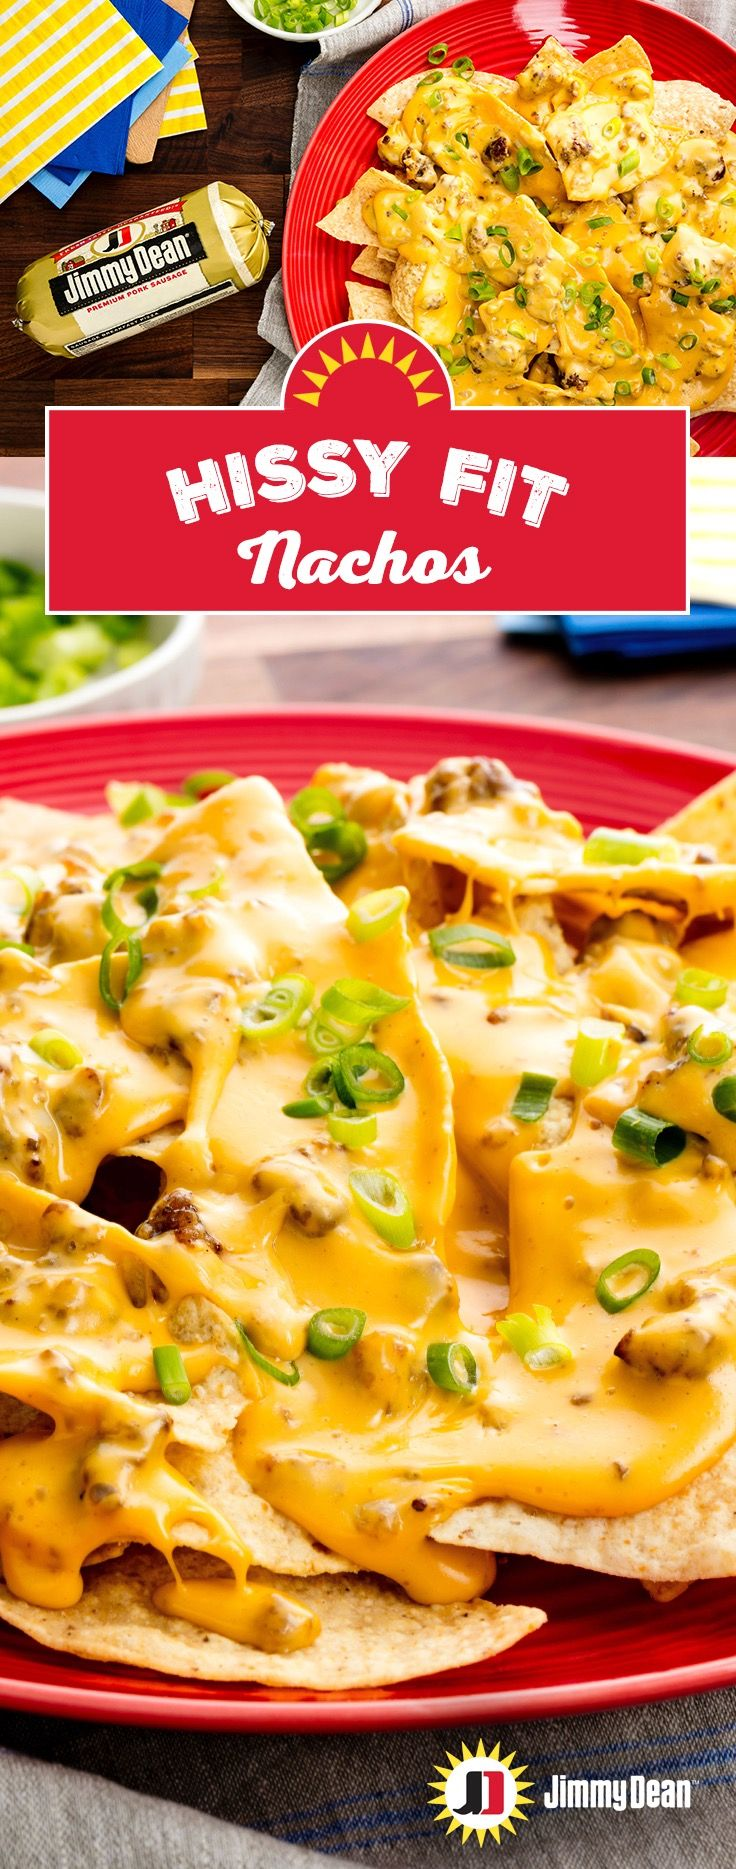 This southern favorite is named for the freakout people have when the dip's all gone. A slow cooker makes this ultimate game-day appetizer: Just turn it on, throw Jimmy Dean Premium Pork Sausage, cheese, sour cream, onion powder and basically everything except the kitchen sink in then slather over a bed of nachos.